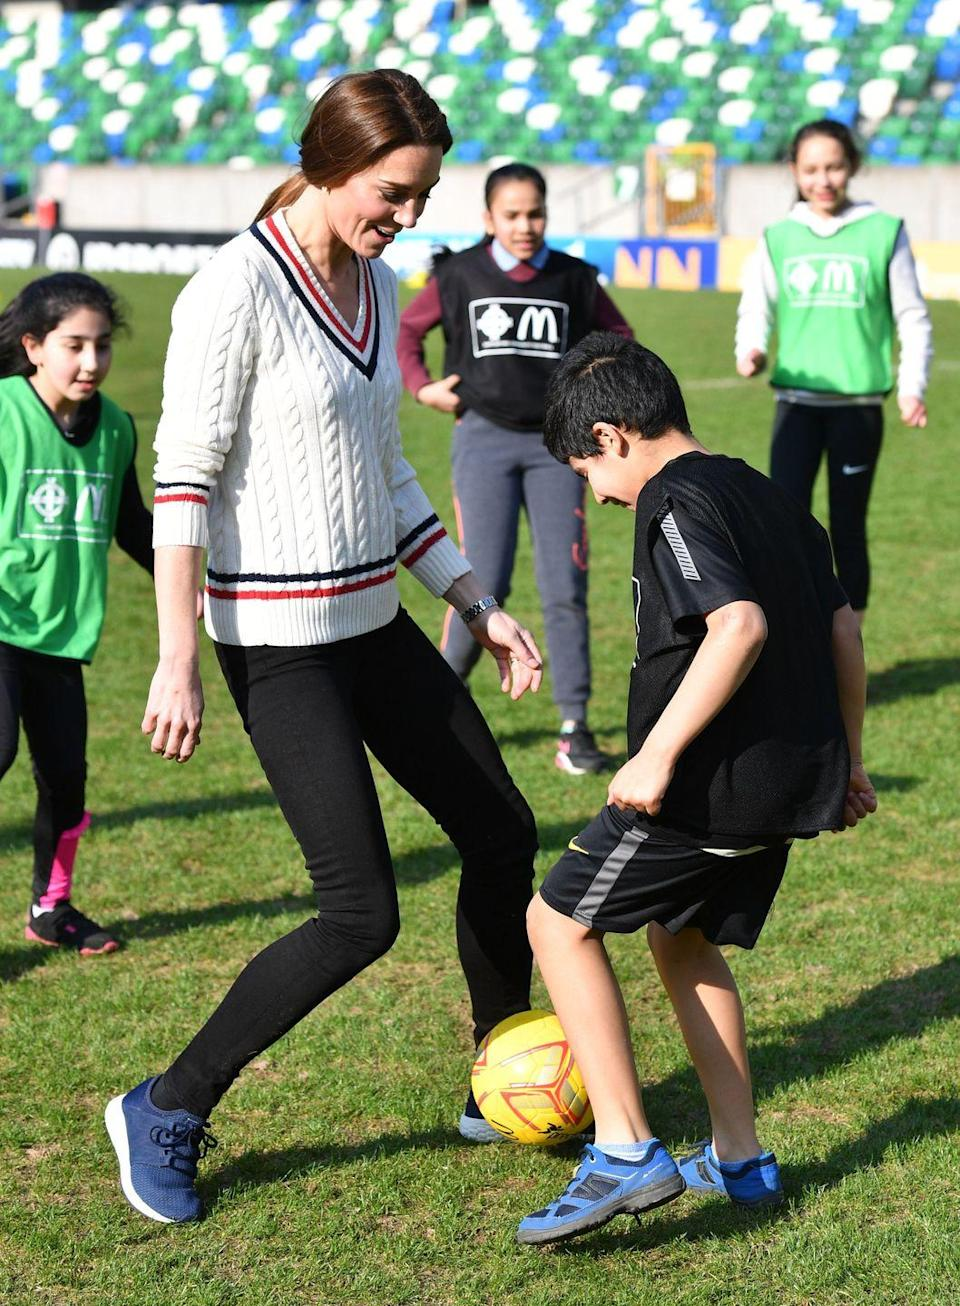 """<p>The athletic Duchess played soccer (known in the UK as football) with children during a visit to the National Stadium in <a href=""""https://www.townandcountrymag.com/society/tradition/g26550415/prince-william-kate-middleton-northern-ireland-visit-photos/"""" rel=""""nofollow noopener"""" target=""""_blank"""" data-ylk=""""slk:Belfast, Ireland,"""" class=""""link rapid-noclick-resp"""">Belfast, Ireland,</a> home of the Irish Football Association. </p>"""